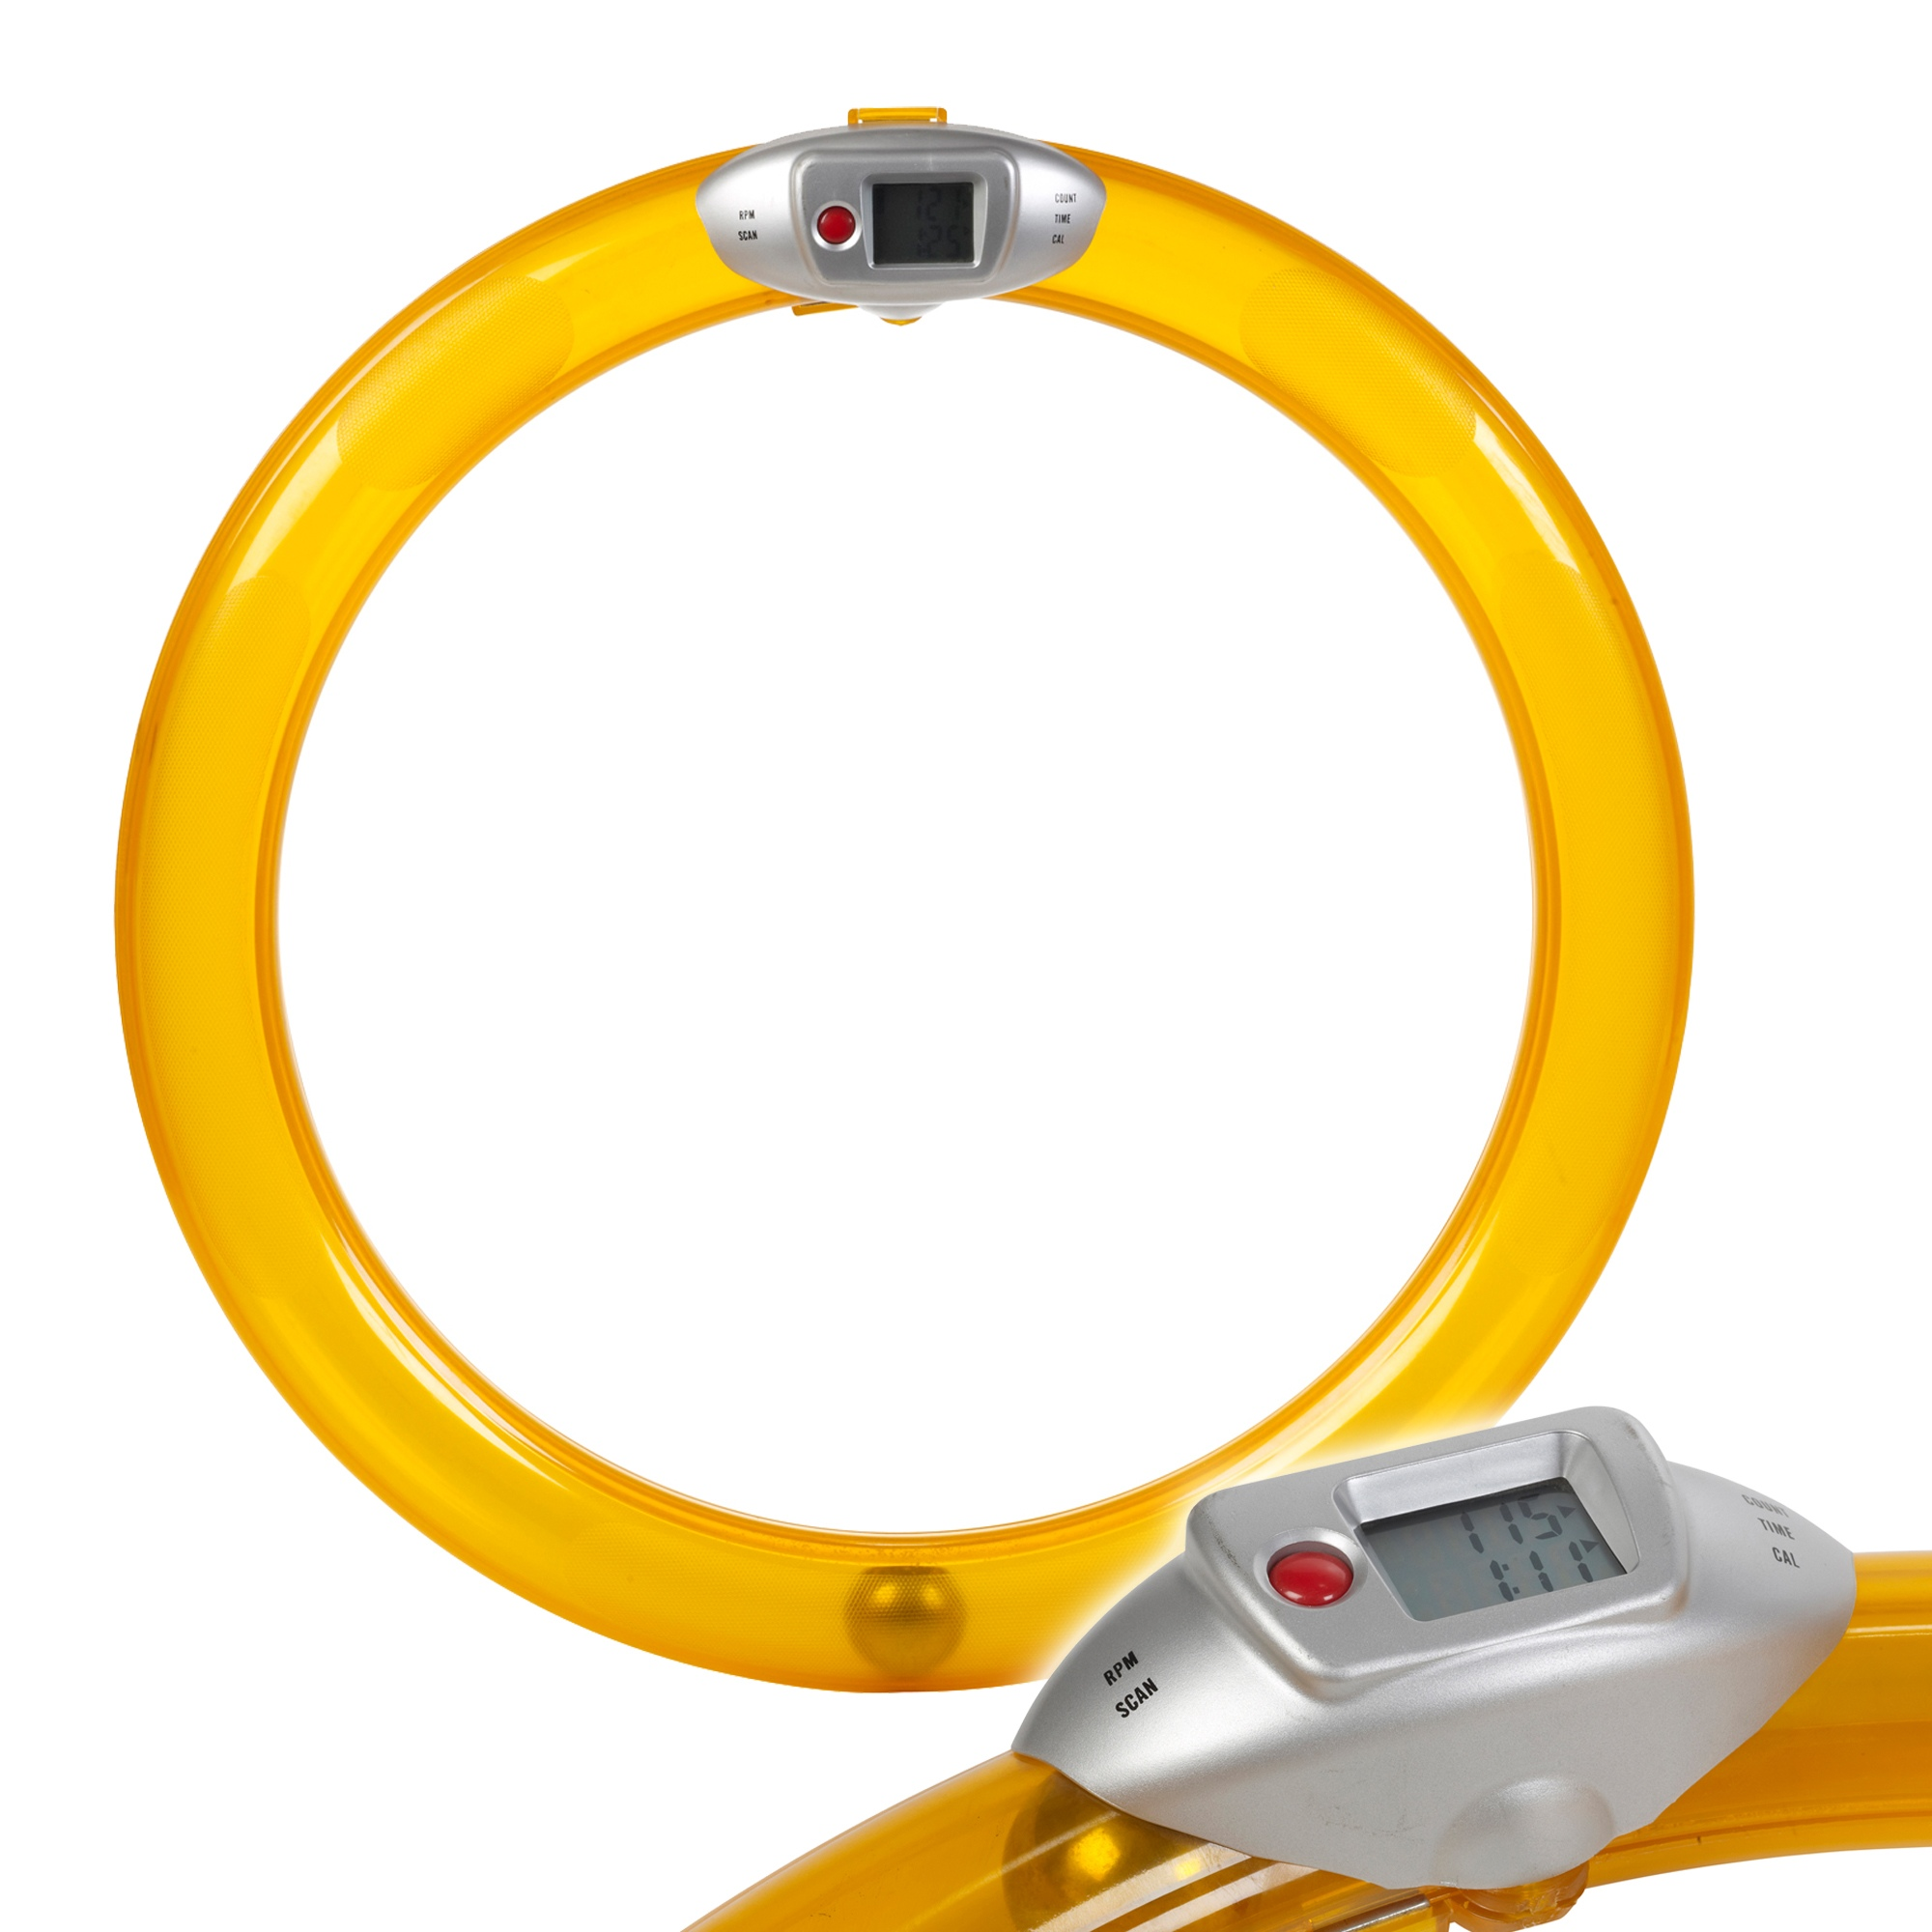 gym rings fitness specifics muscles itm powercircle ring electric circle body pilates digital full workout exercise item power